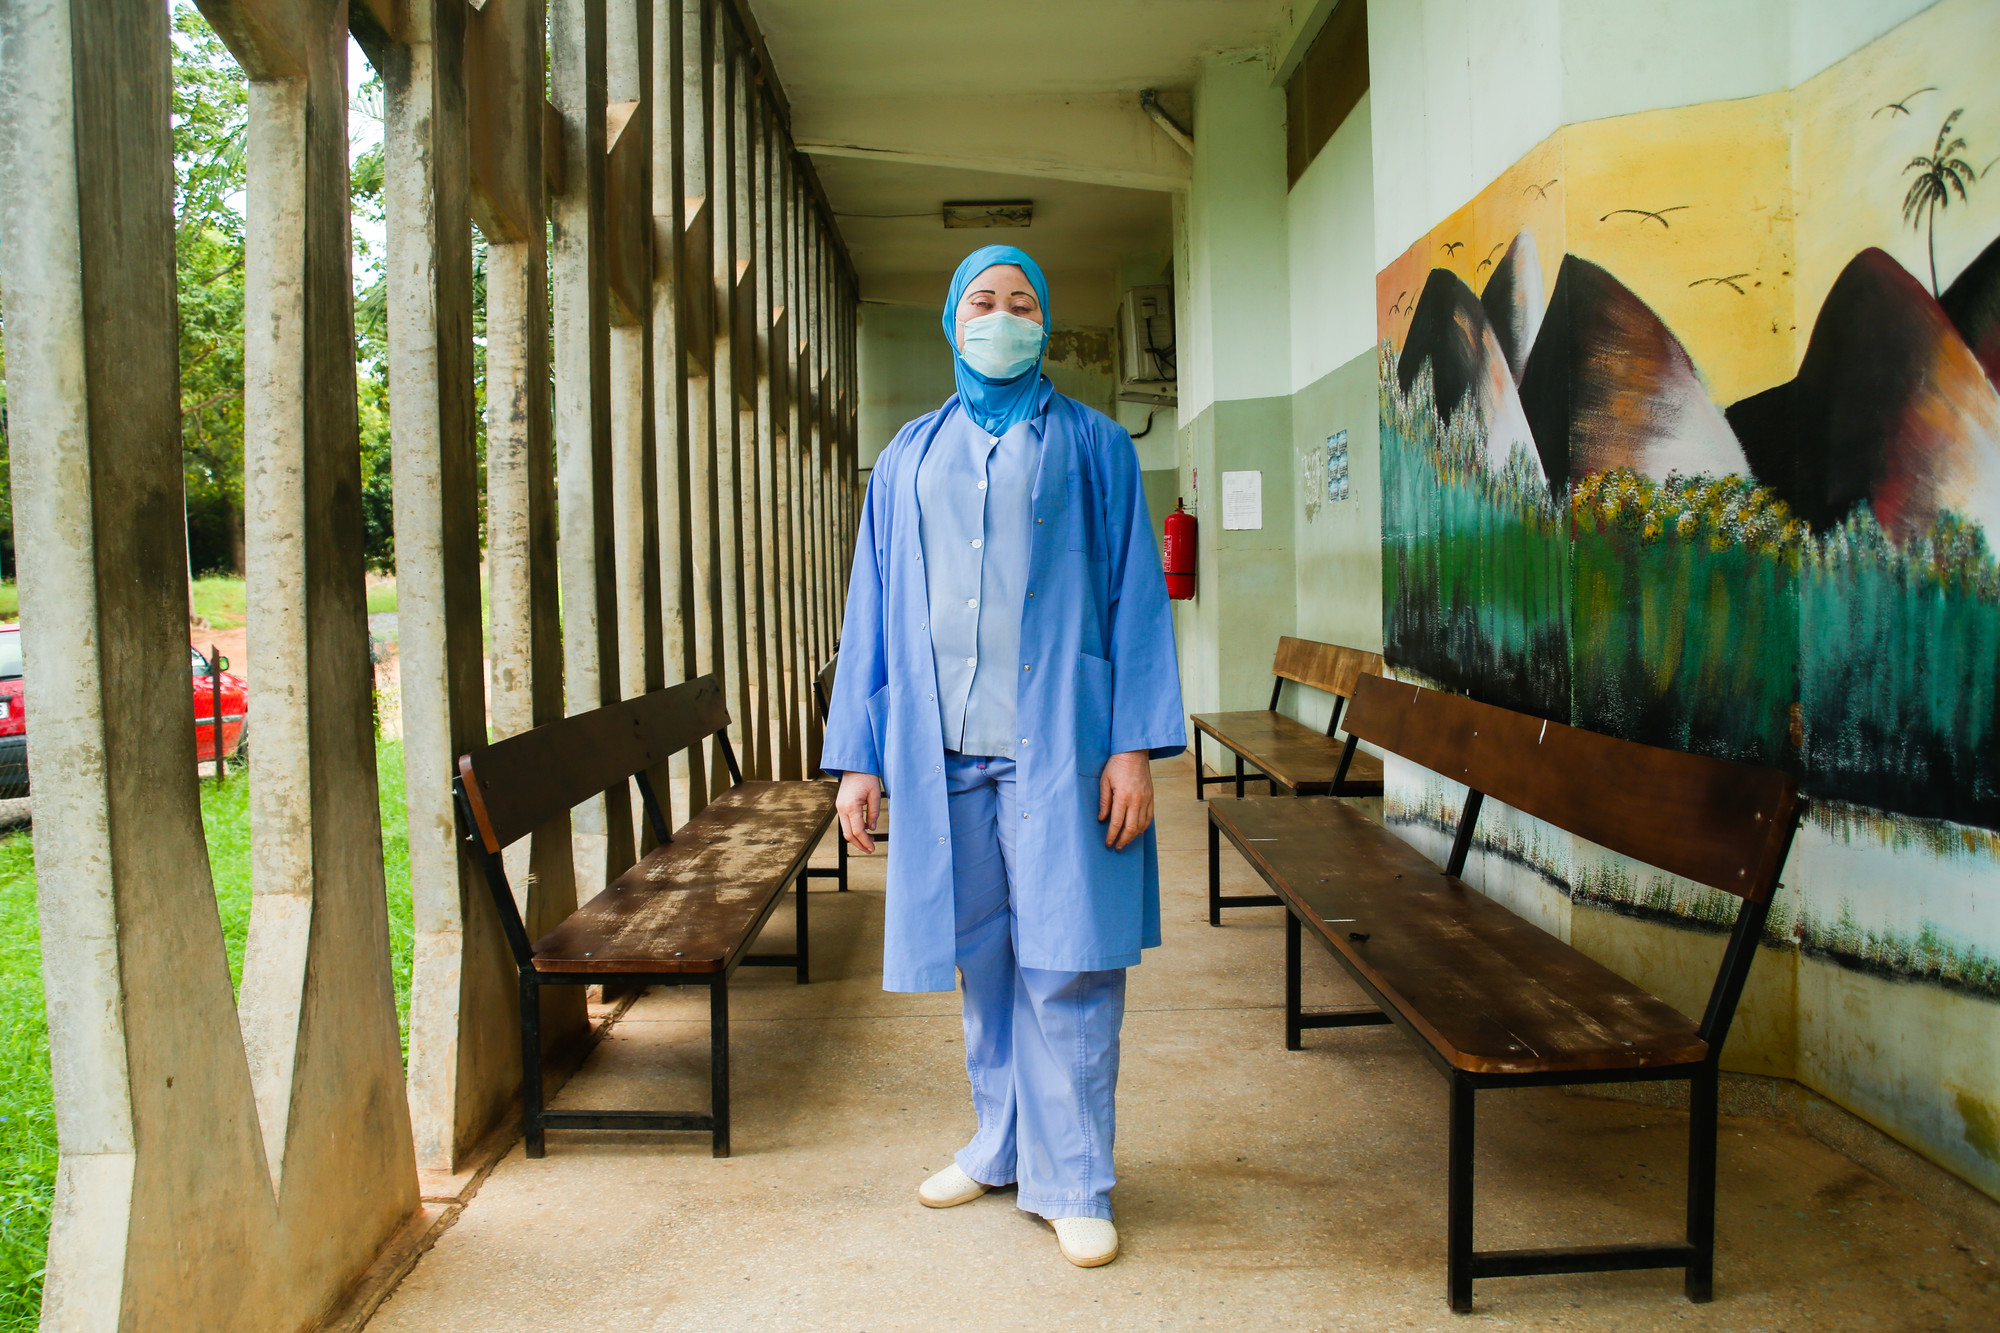 A woman in face mask and scrubs stands in a hallway.